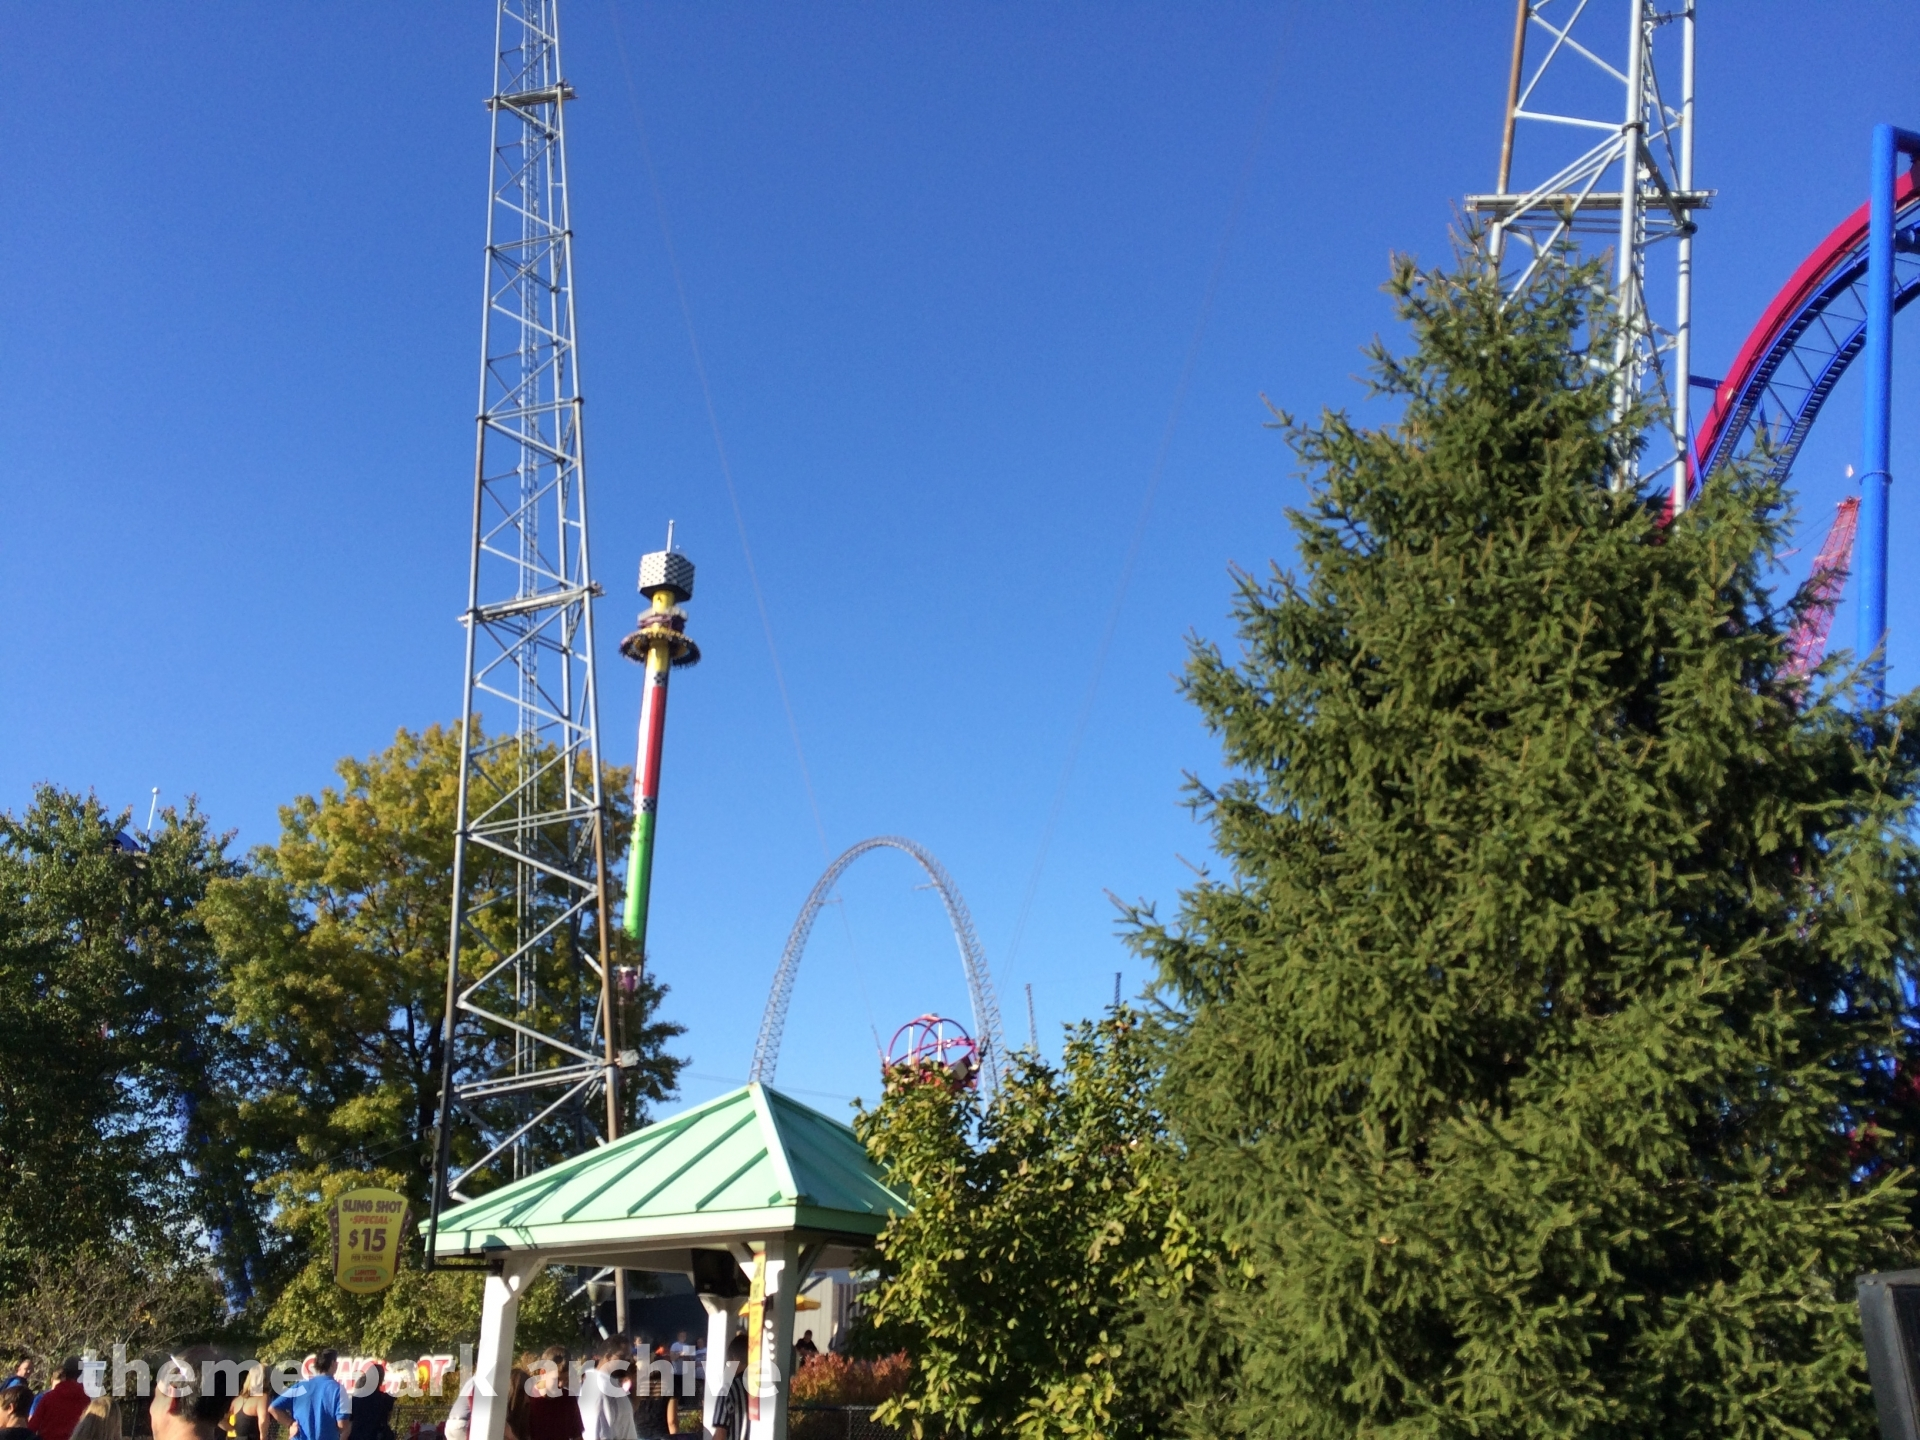 Sling Shot at Kings Island